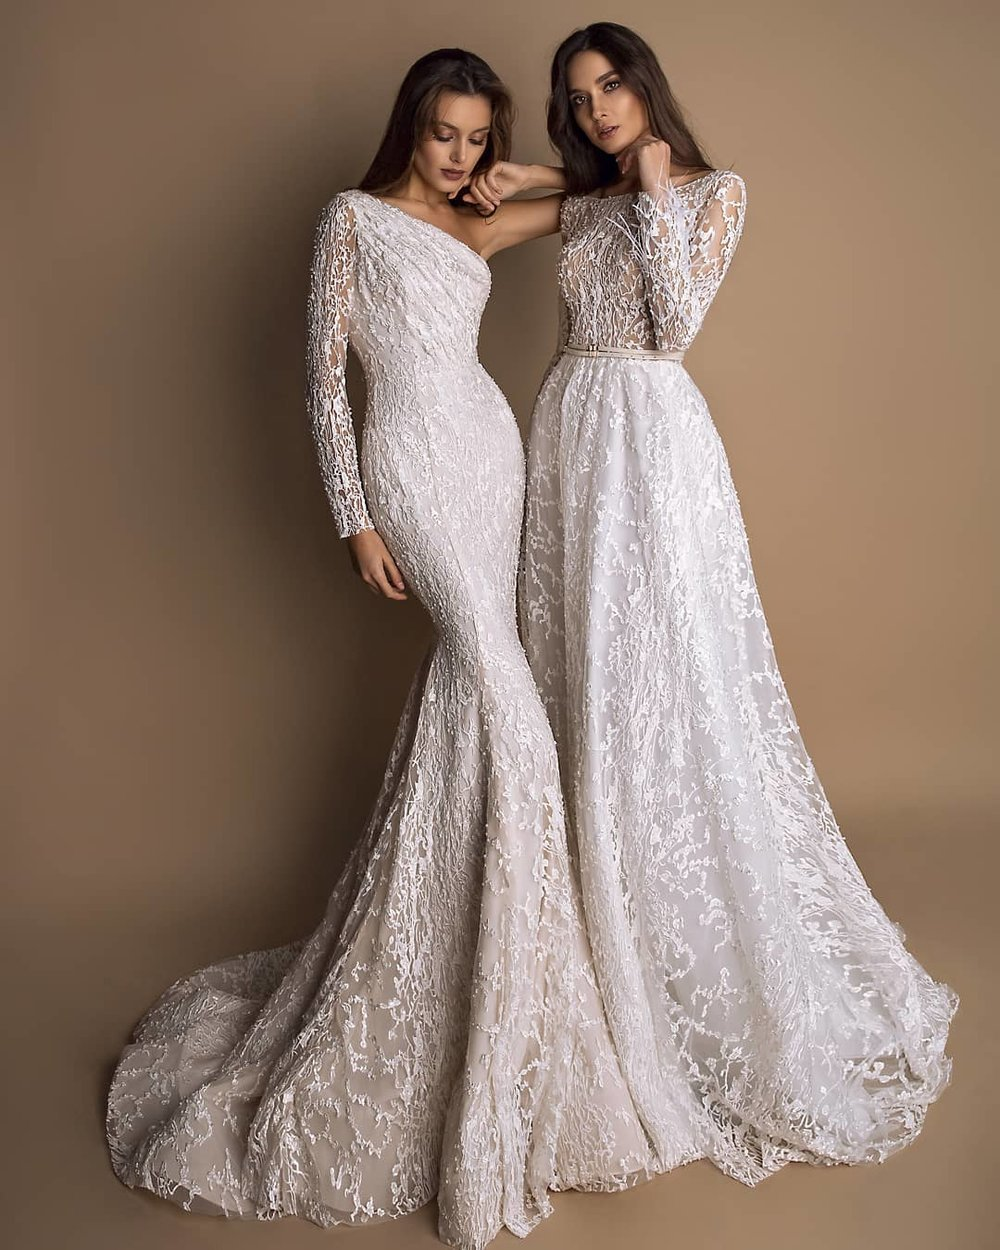 Wedding dresses Demi and Eveline